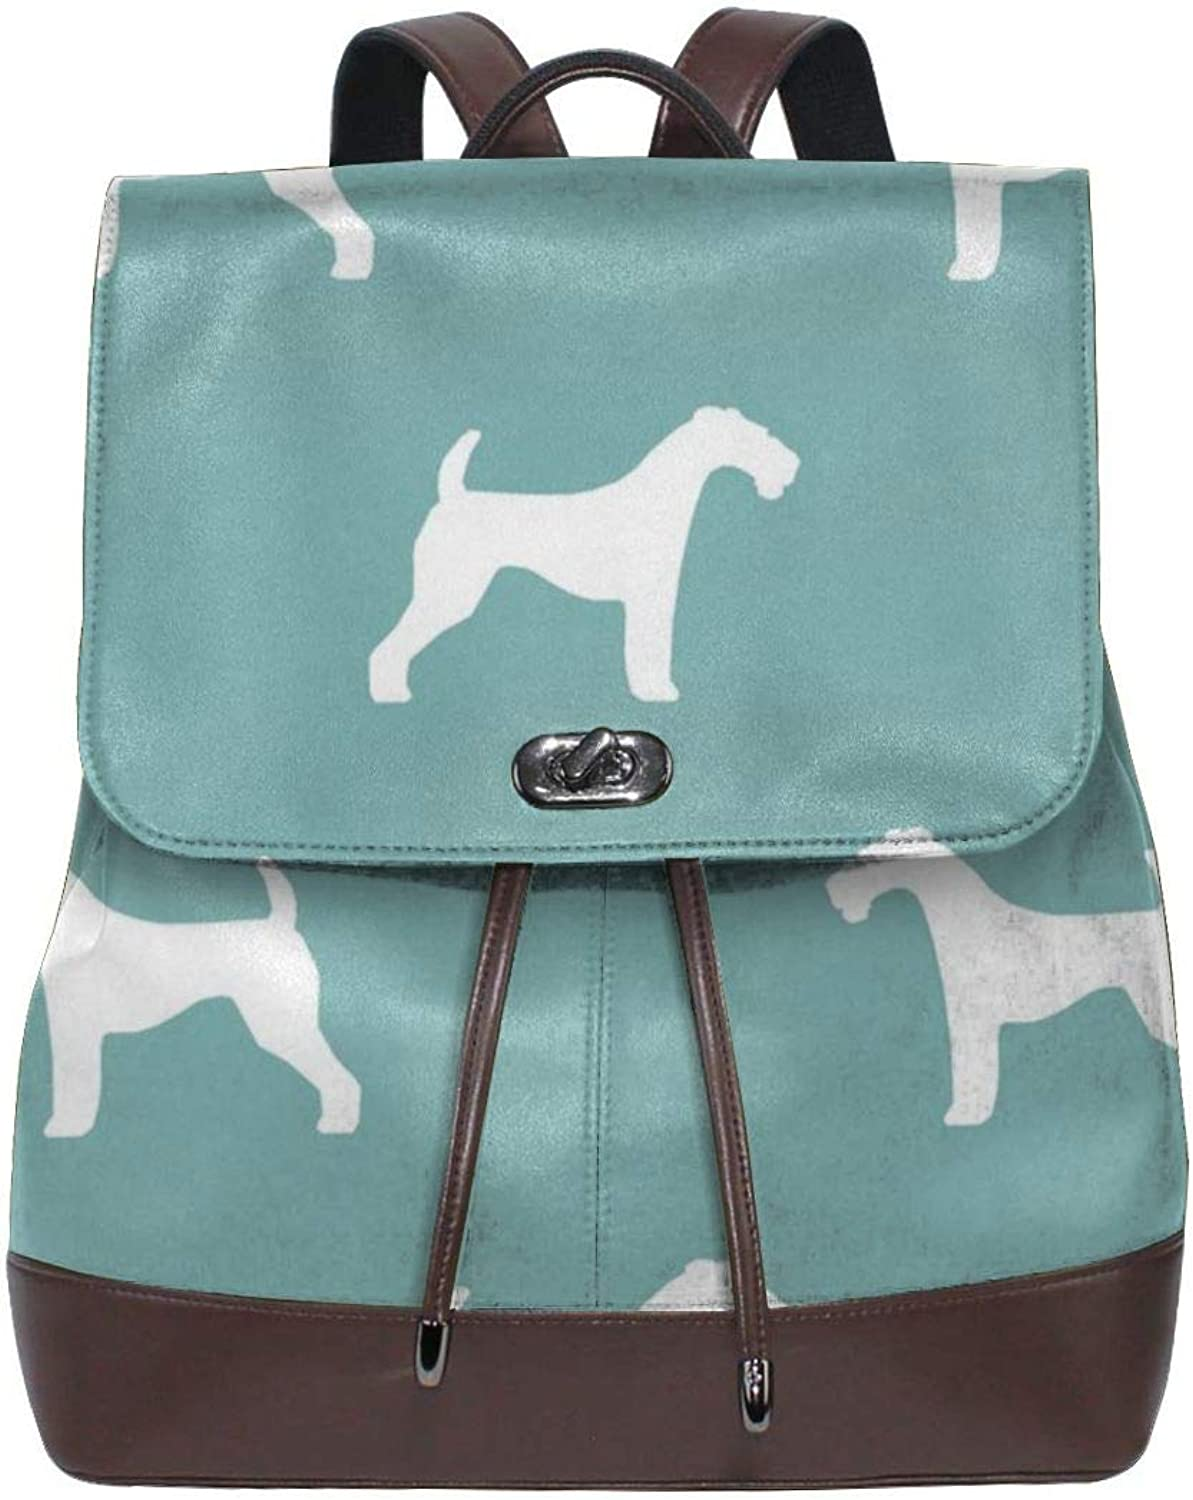 Fashion Leather Backpack Airotale Terrier Silhouette Dog Gulf Purse Waterproof Anti Rucksack PU Leather Bags